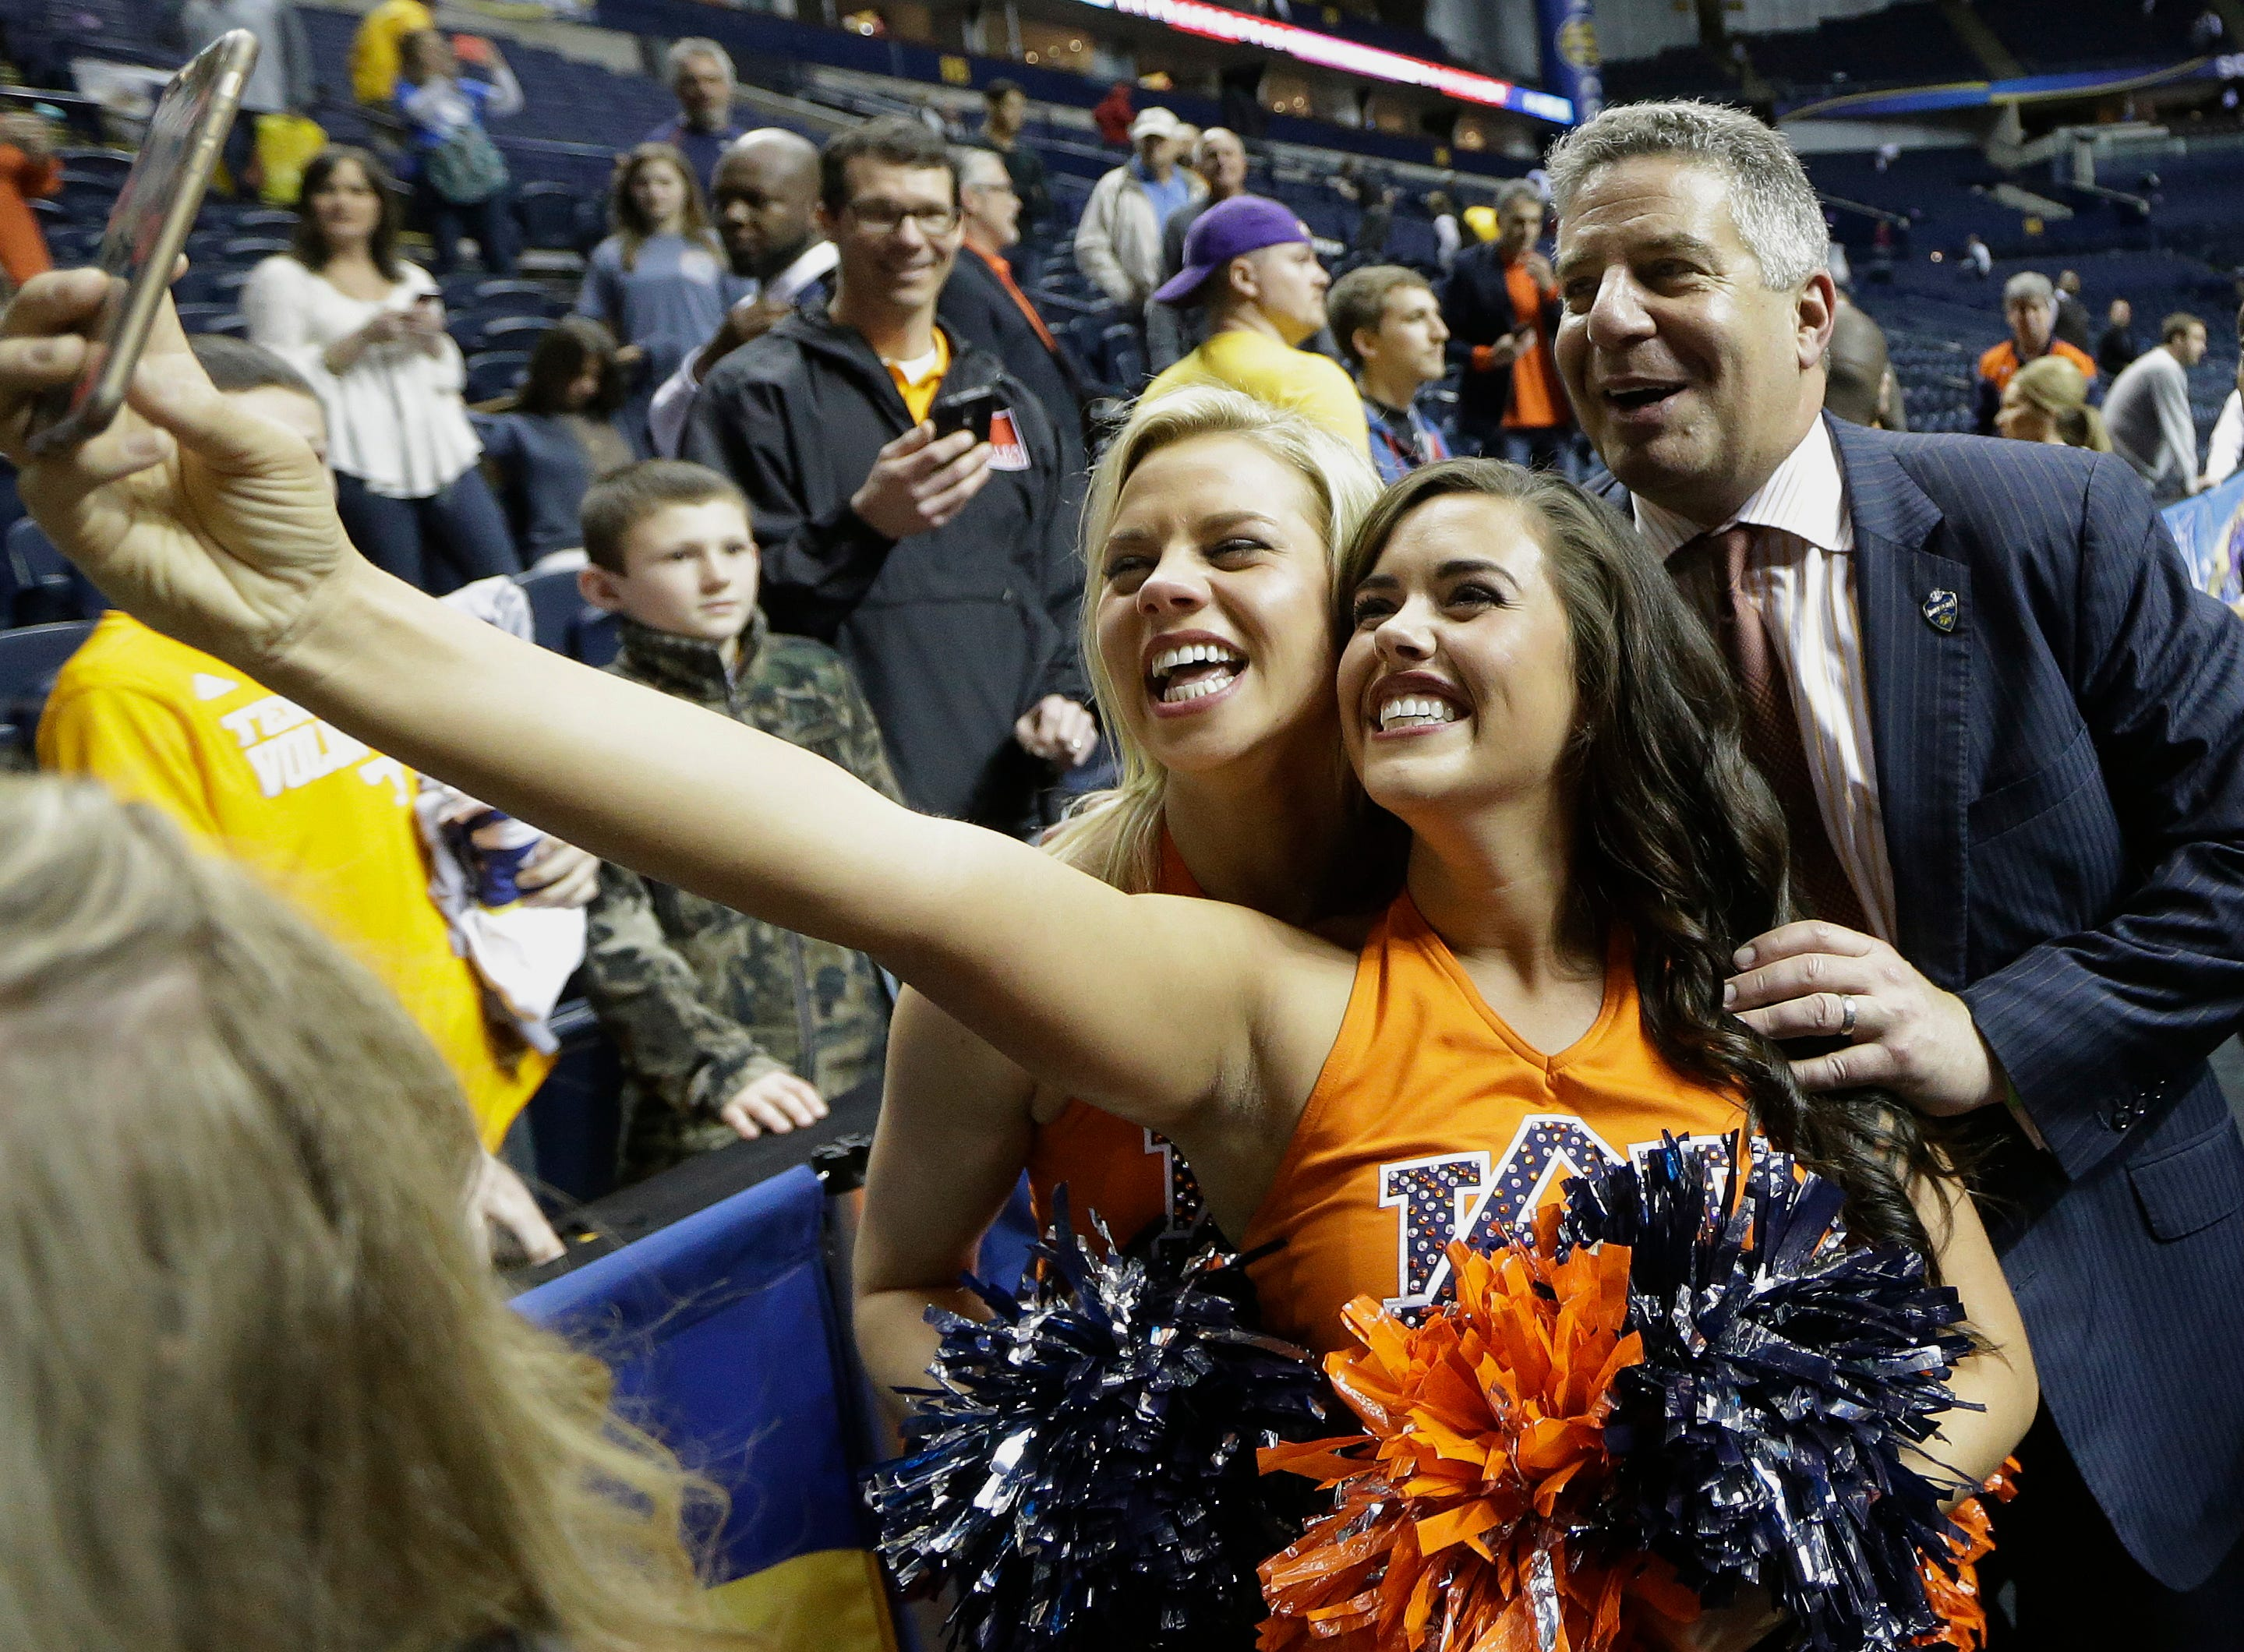 Auburn head coach Bruce Pearl steps into a photo made by Auburn cheerleaders after overtime of an NCAA college basketball game in the quarterfinal round of the Southeastern Conference tournament against LSU, Friday, March 13, 2015, in Nashville, Tenn. Auburn won in overtime 73-70. (AP Photo/Mark Humphrey)